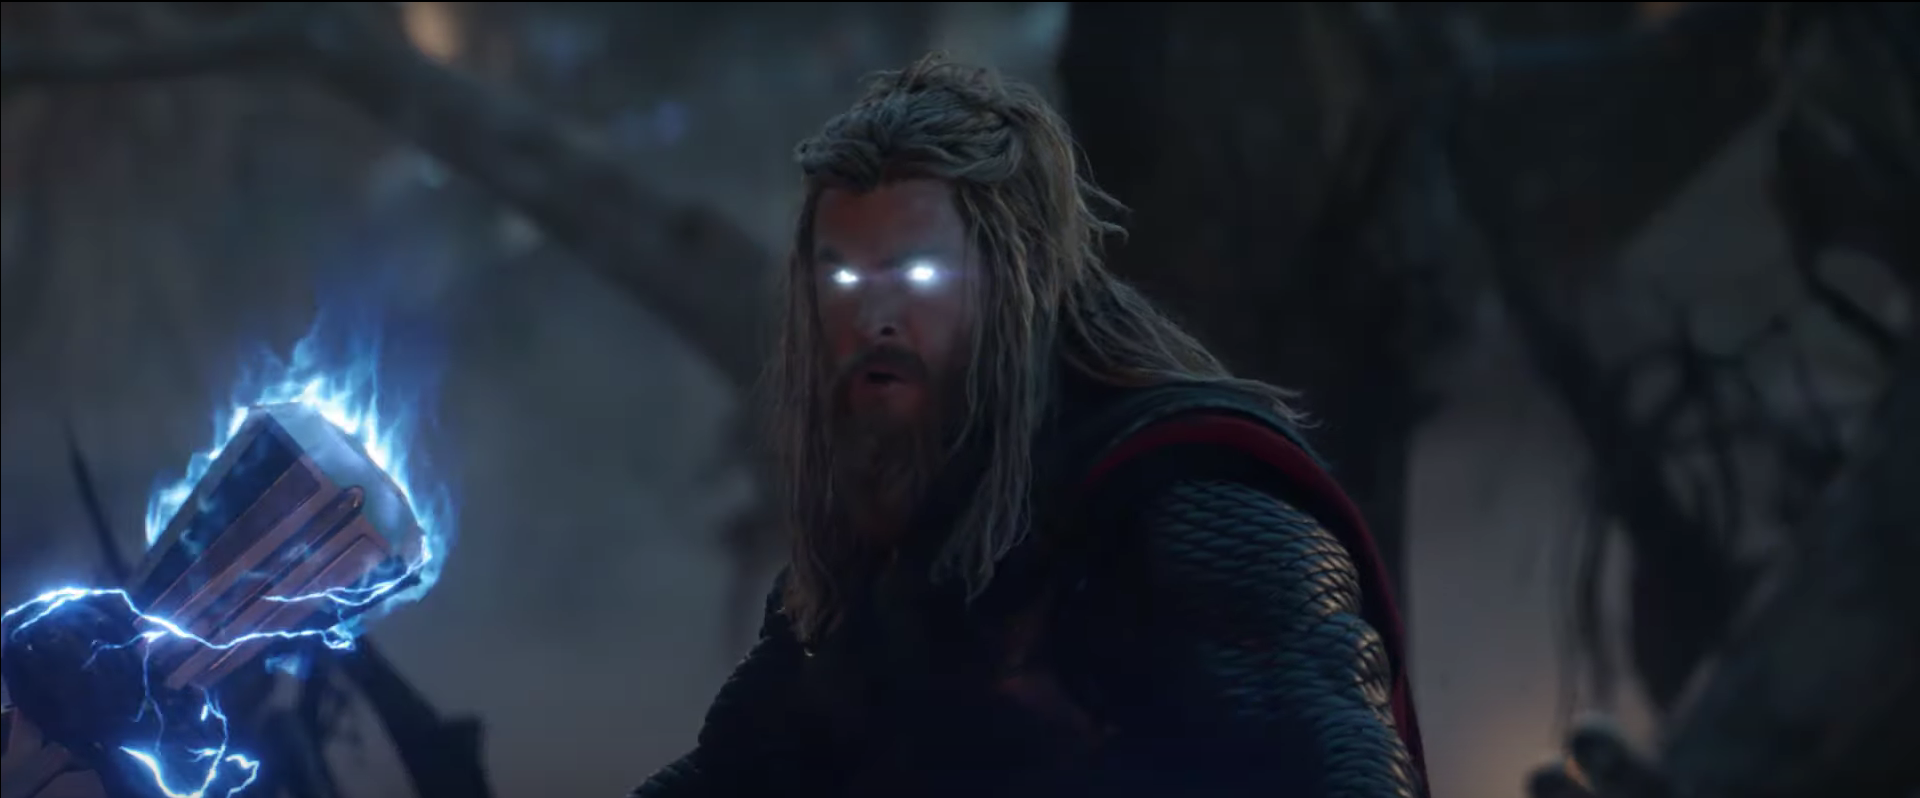 Thor (MCU) vs Ares (DCEU), who would win? - Quora